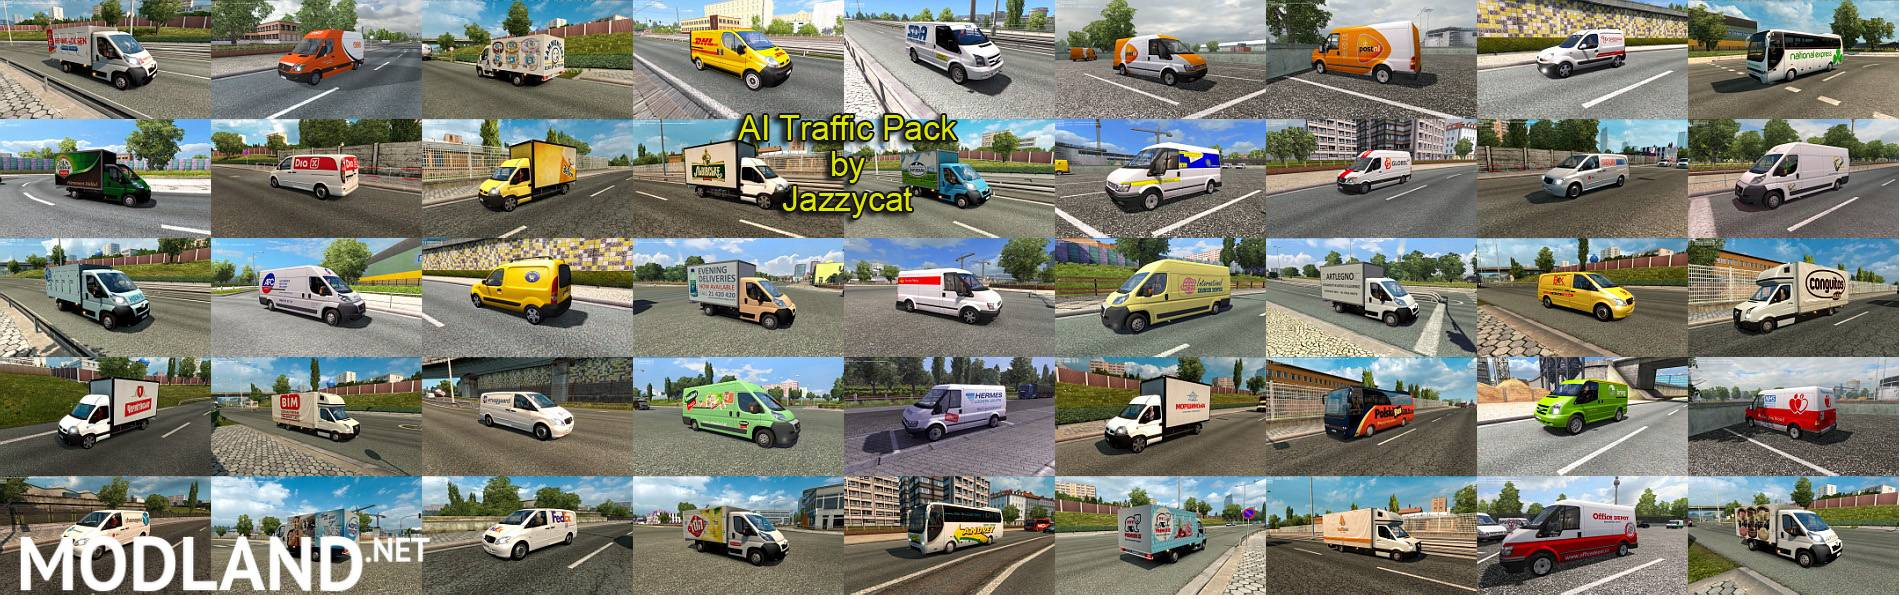 Ai Traffic Pack By Jazzycat V53 Mod For Ets 2